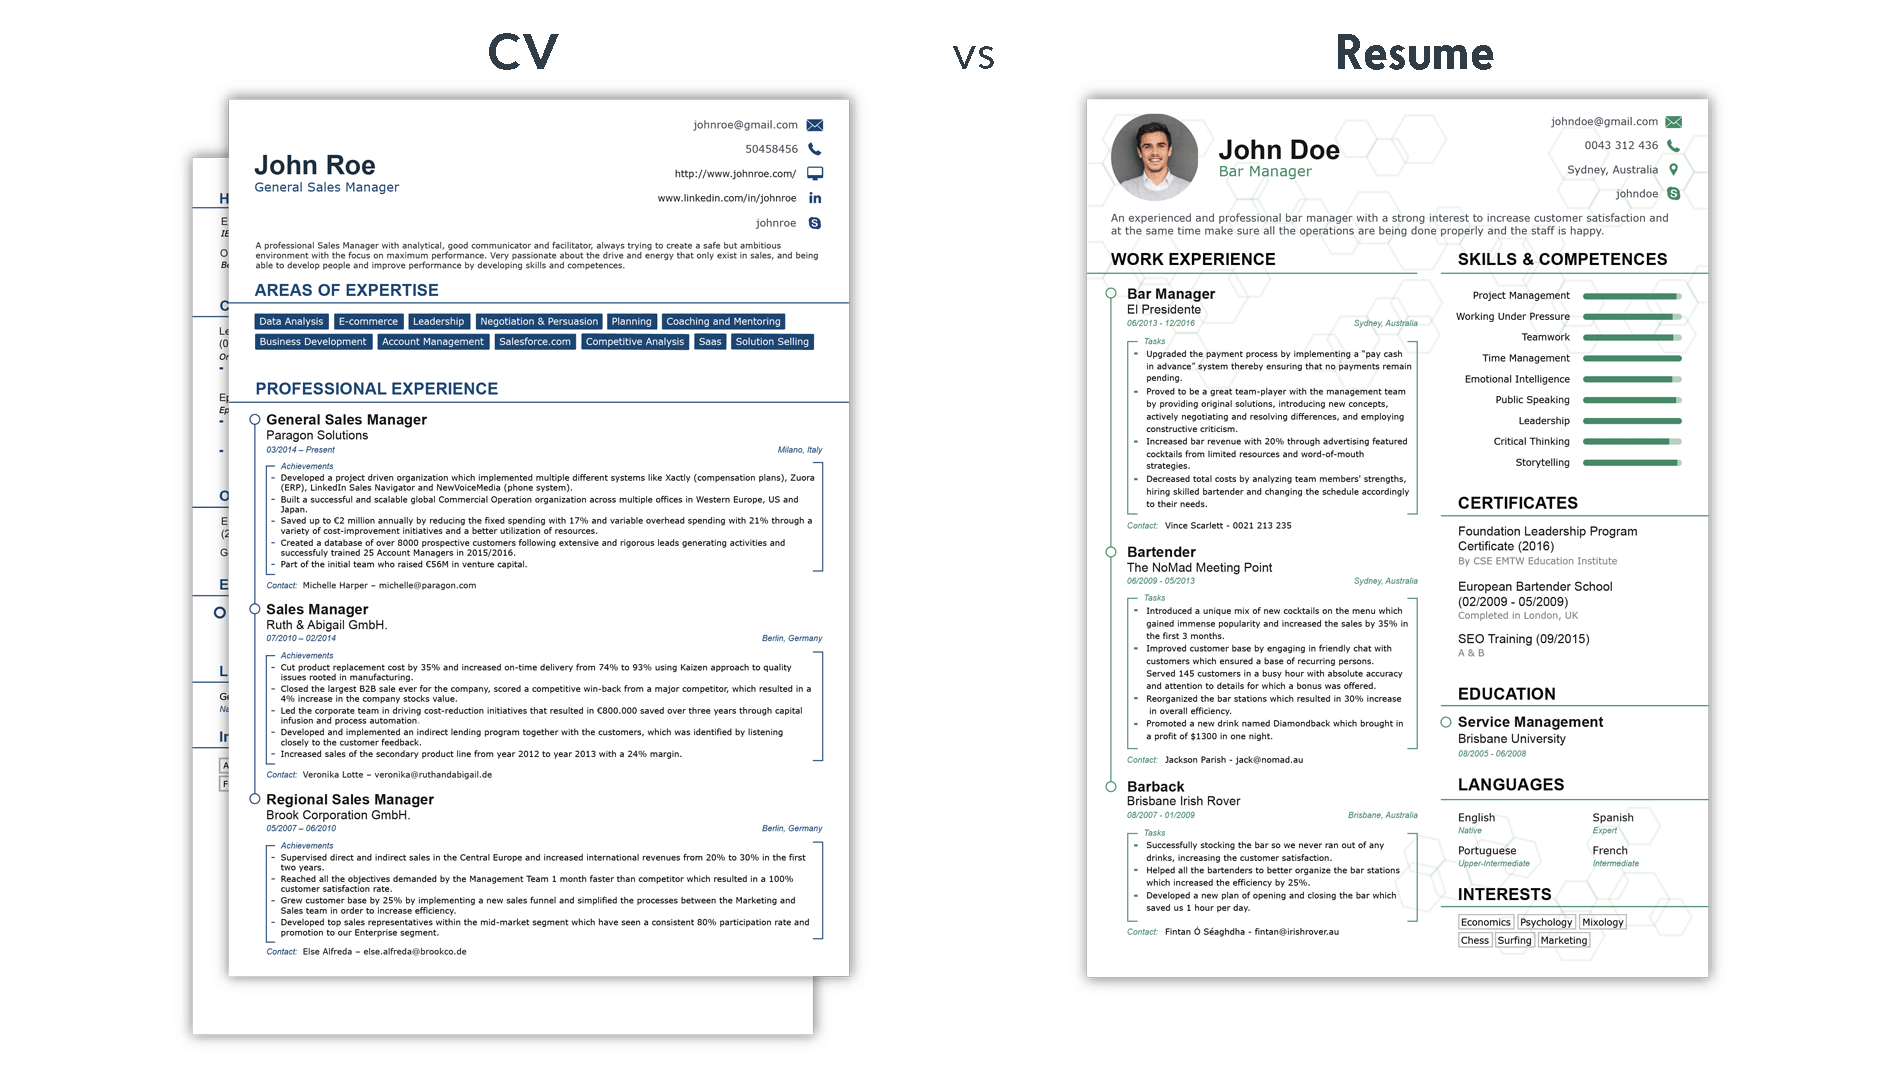 Curriculum Vitae Vs Resume  Image Of Resume